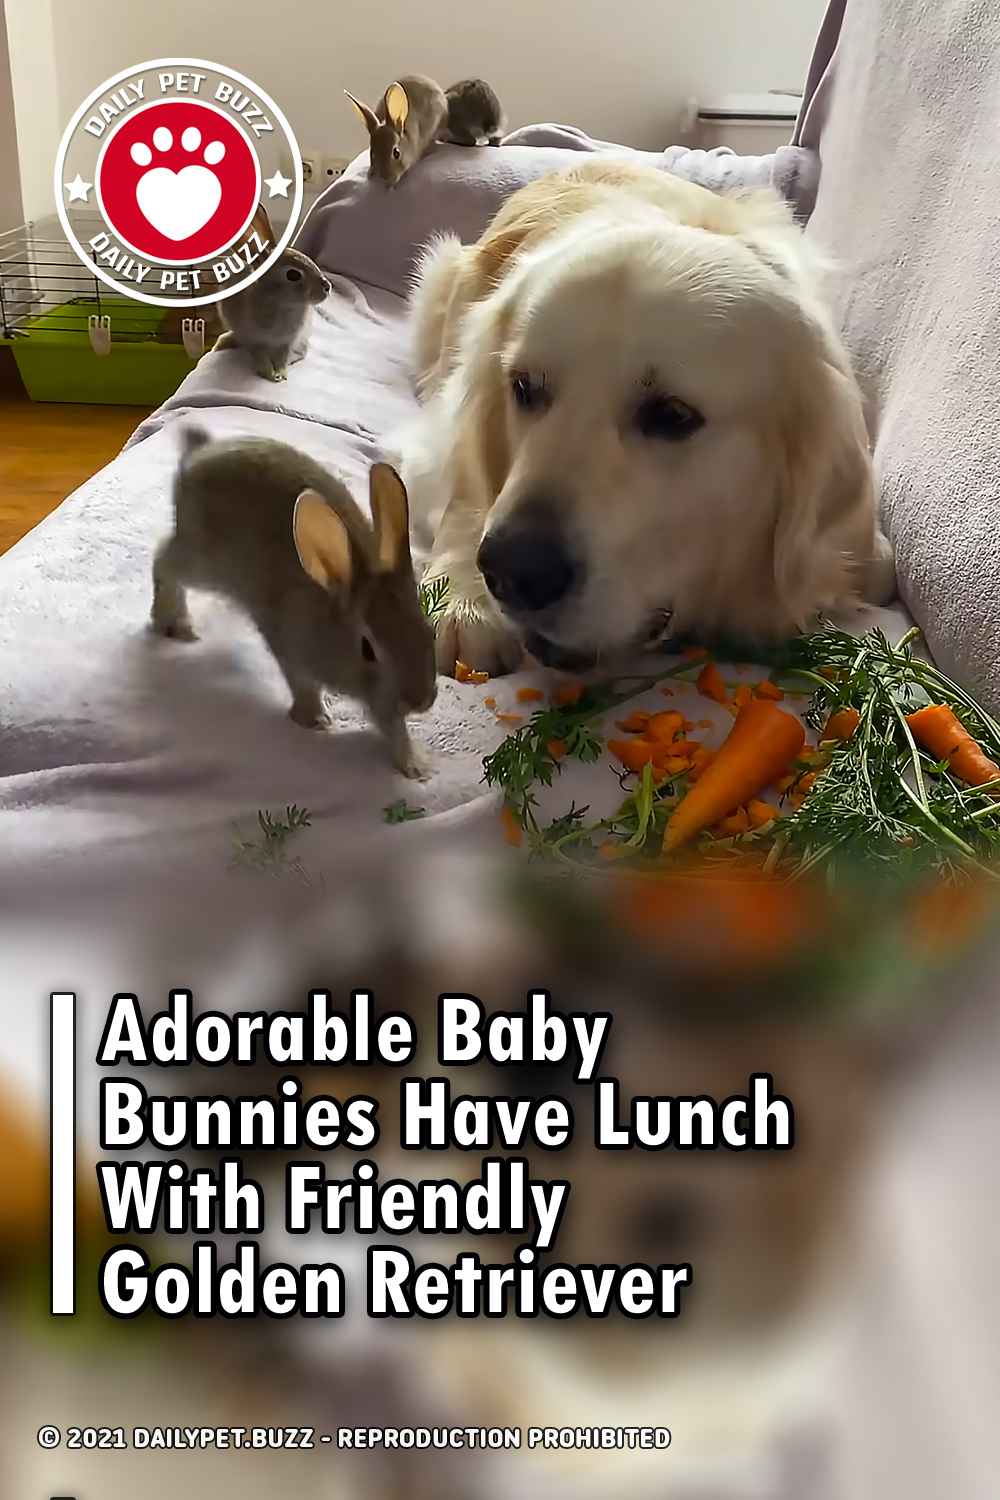 Adorable Baby Bunnies Have Lunch With Friendly Golden Retriever